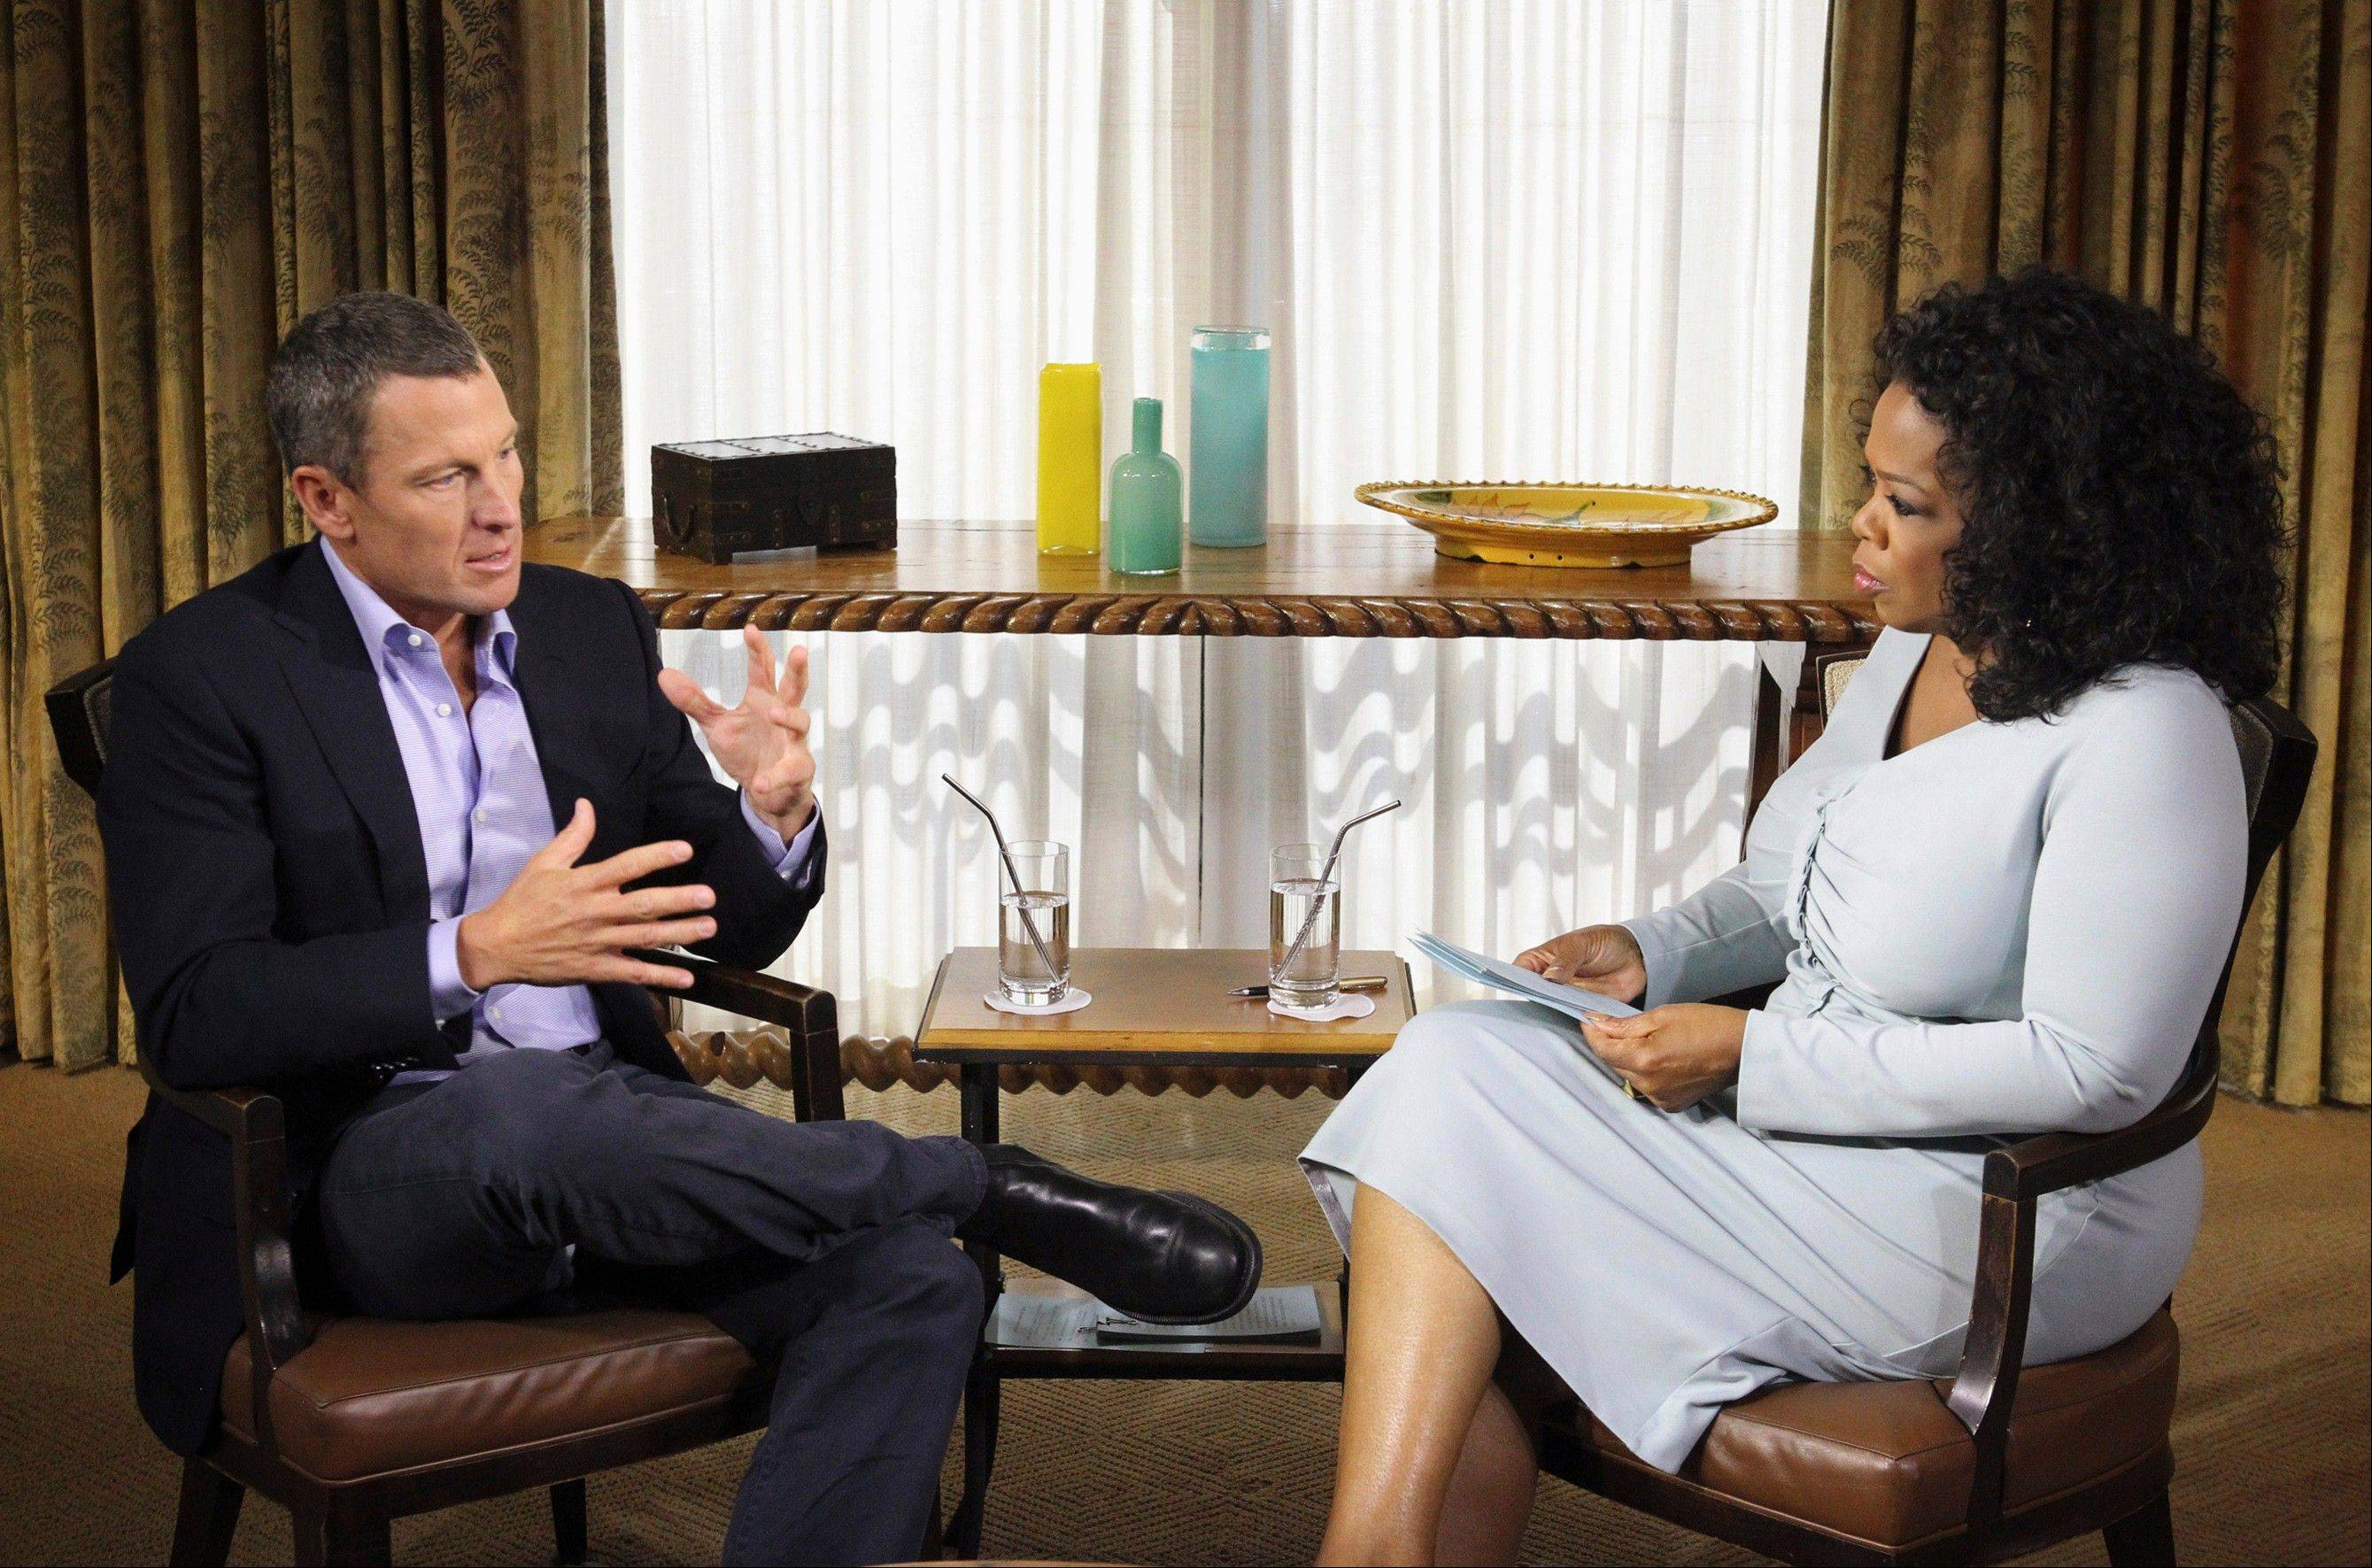 "Talk show host Oprah Winfrey interviews Lance Armstrong during taping for the show ""Oprah and Lance Armstrong: The Worldwide Exclusive"" in Austin, Texas. Armstrong confessed to using performance-enhancing drugs to win the Tour de France cycling during the interview that aired Thursday, reversing more than a decade of denial."